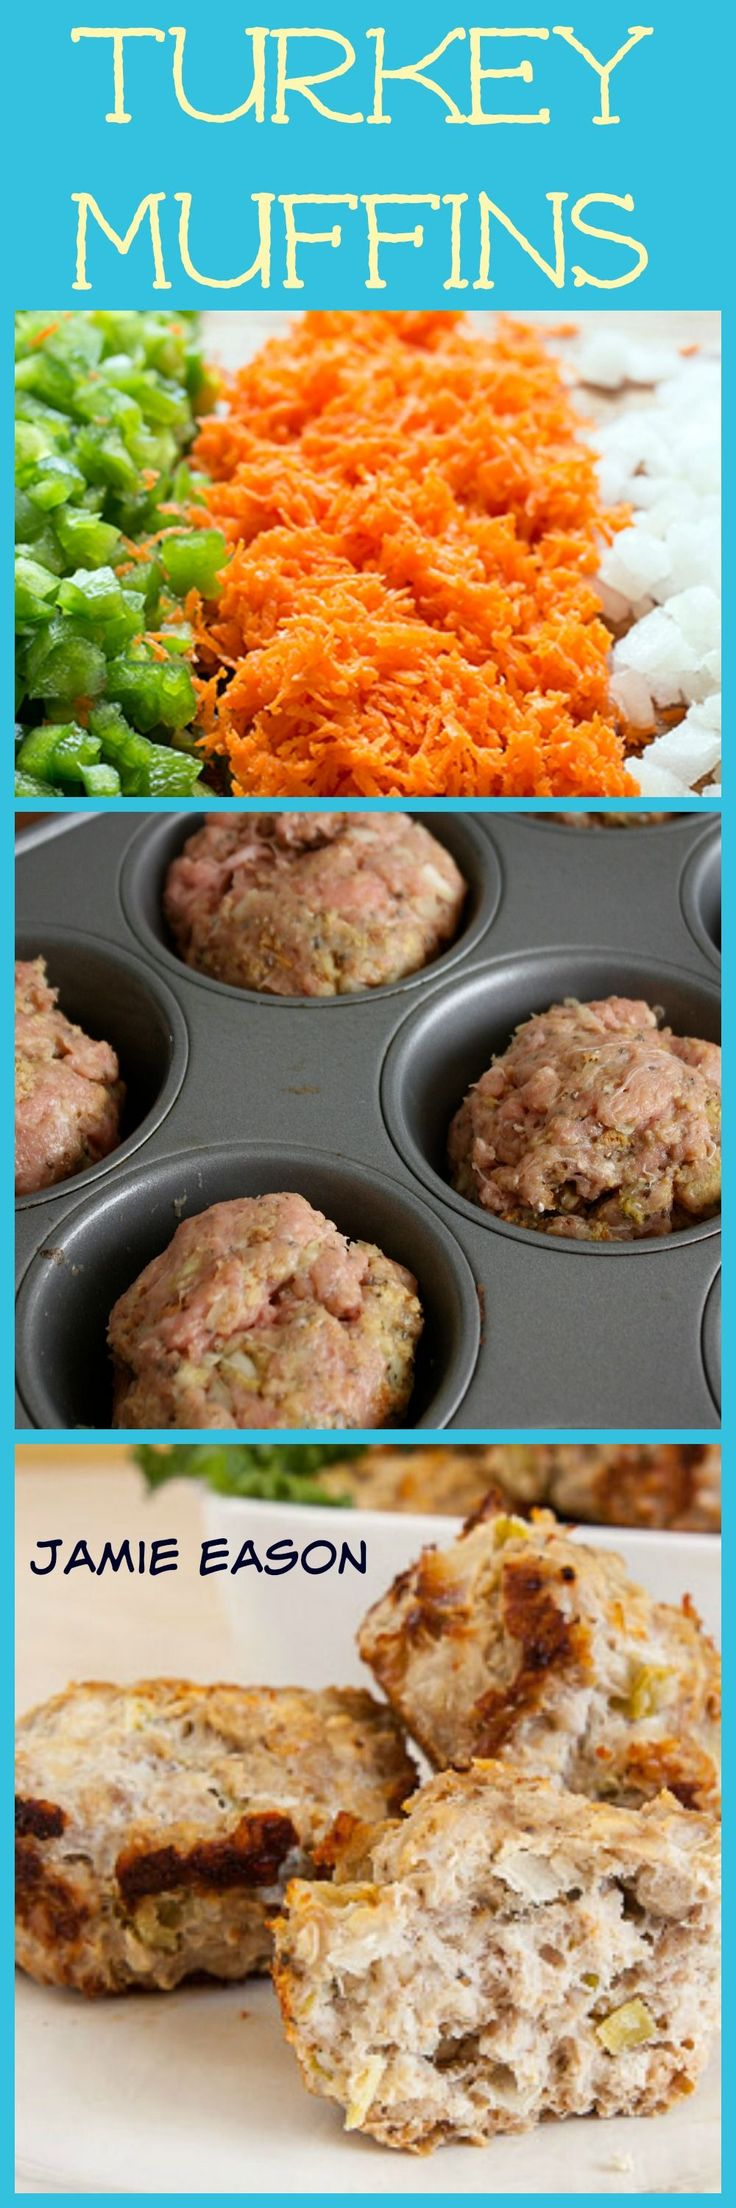 Looking for an easy weekend prep?? These Turkey Muffins are perfect for busy moms like me.  Prep a Batch and use them to Grab and Go.  #21dayfix